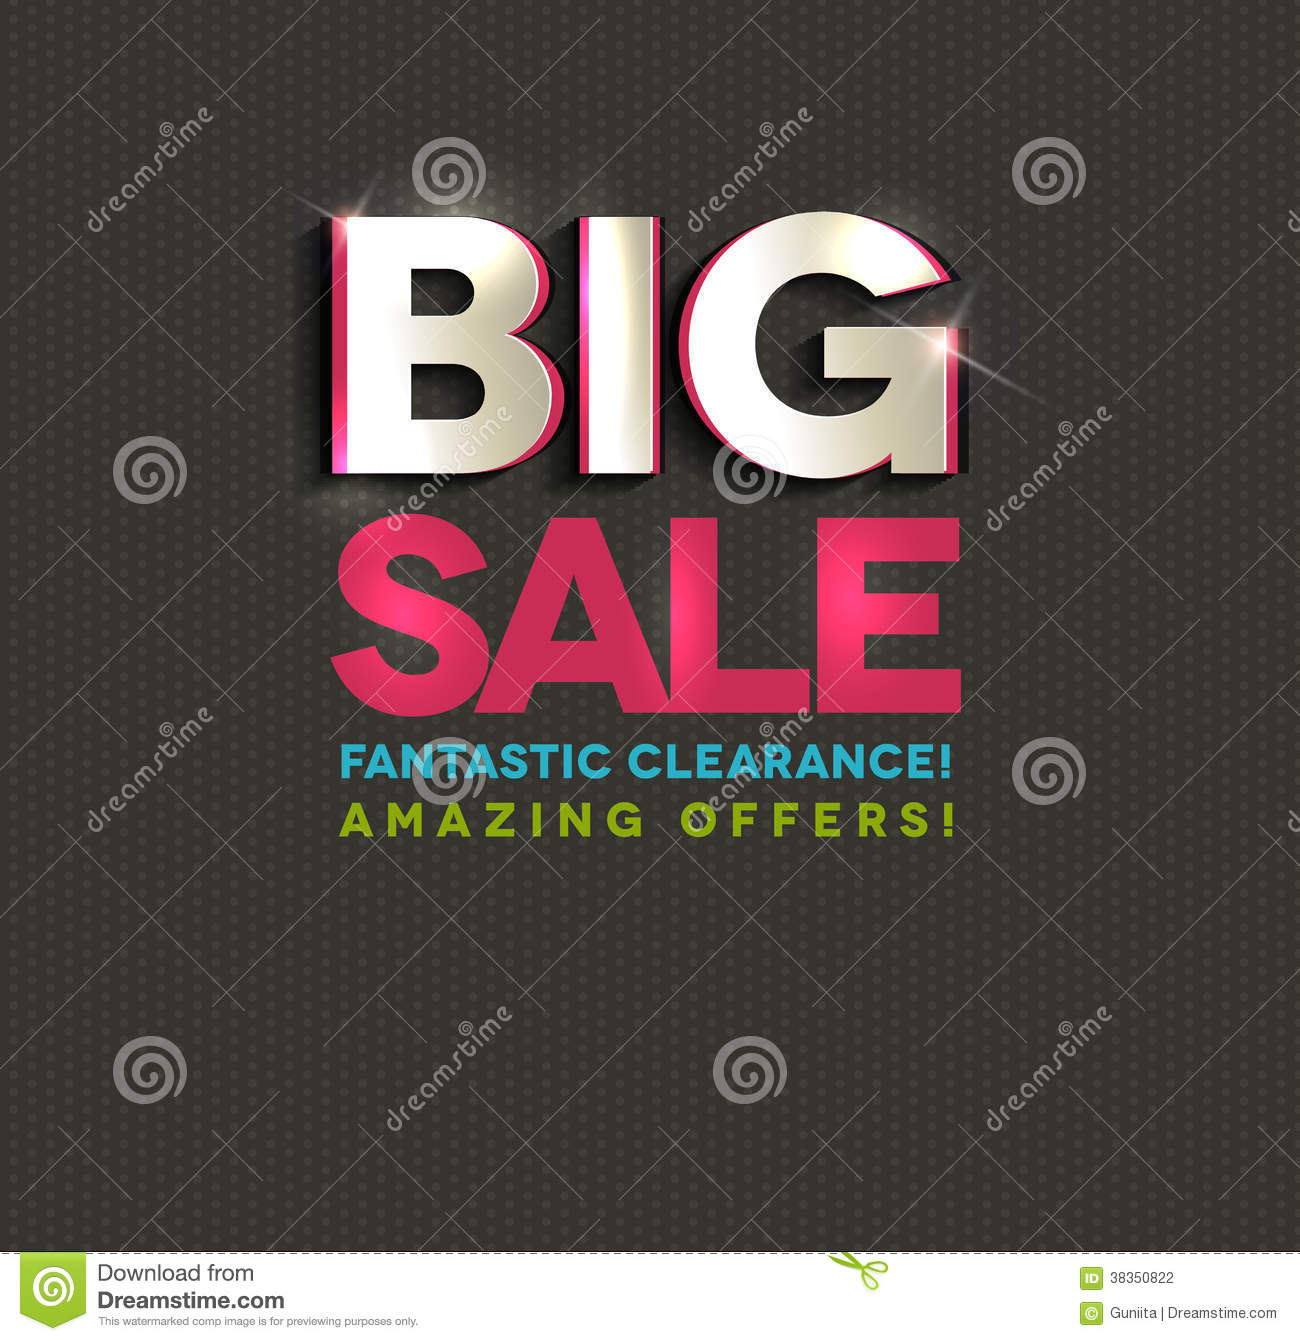 Big Sale Poster, Cut Out Letters Stock Vector - Illustration of best